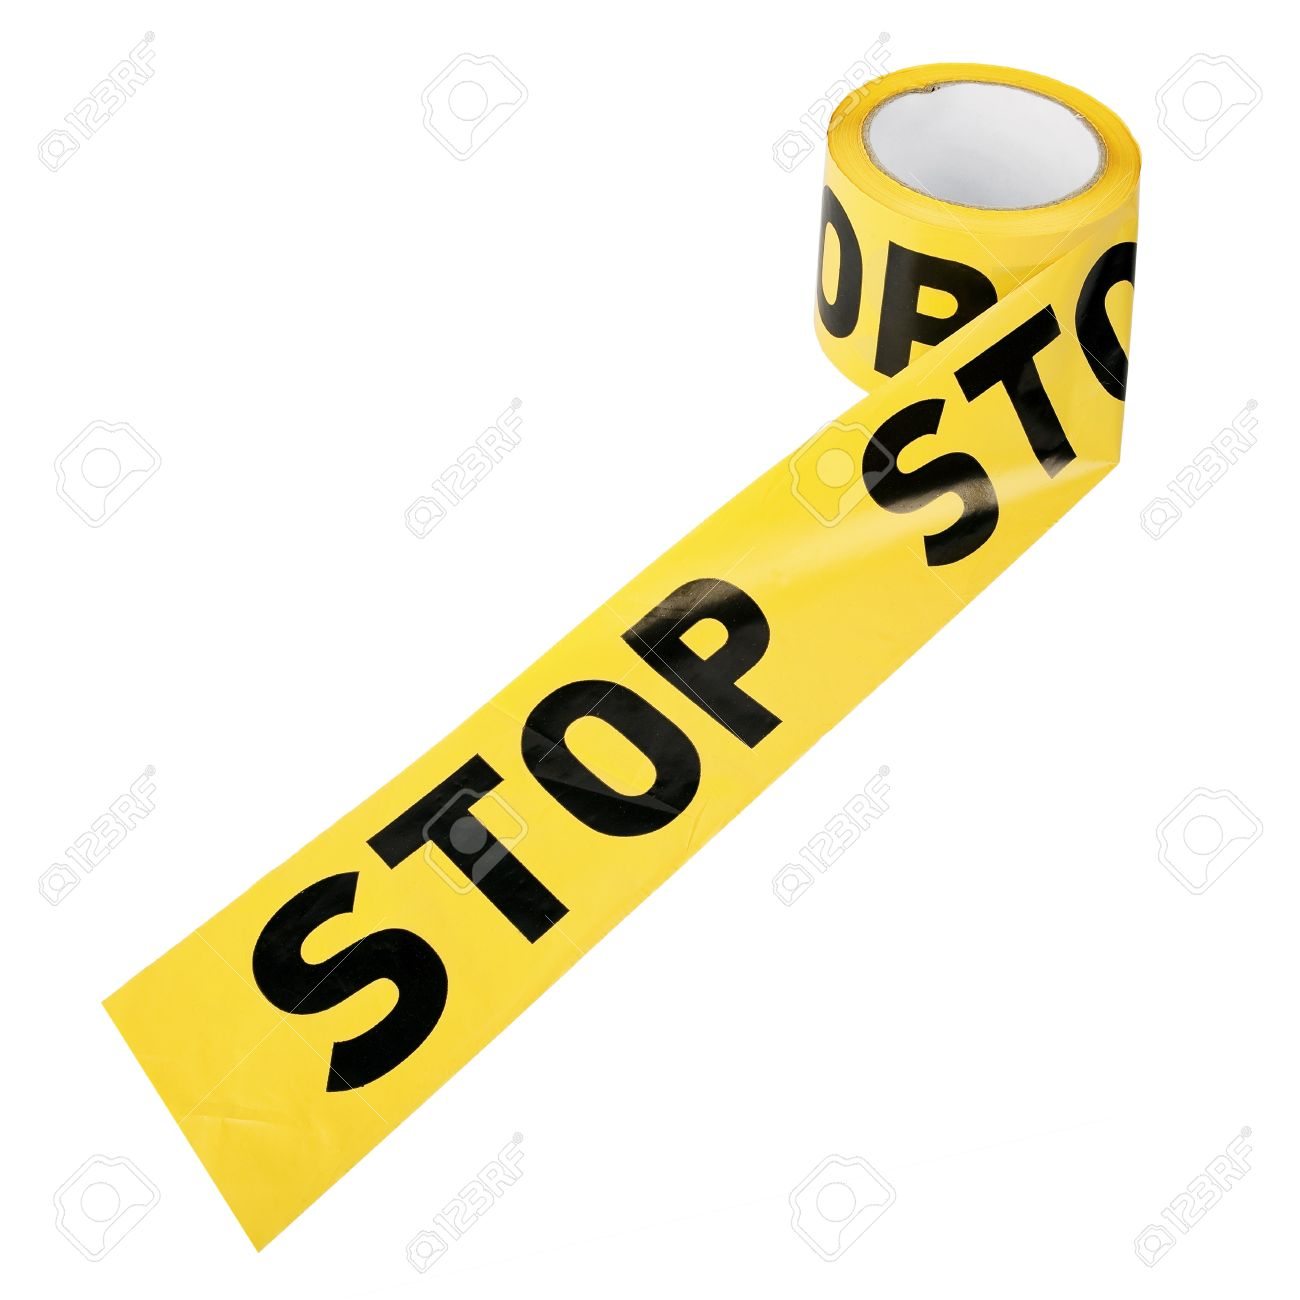 """The Apool Of Yellow Plastic Caution Or Restriction Tape """"STOP."""